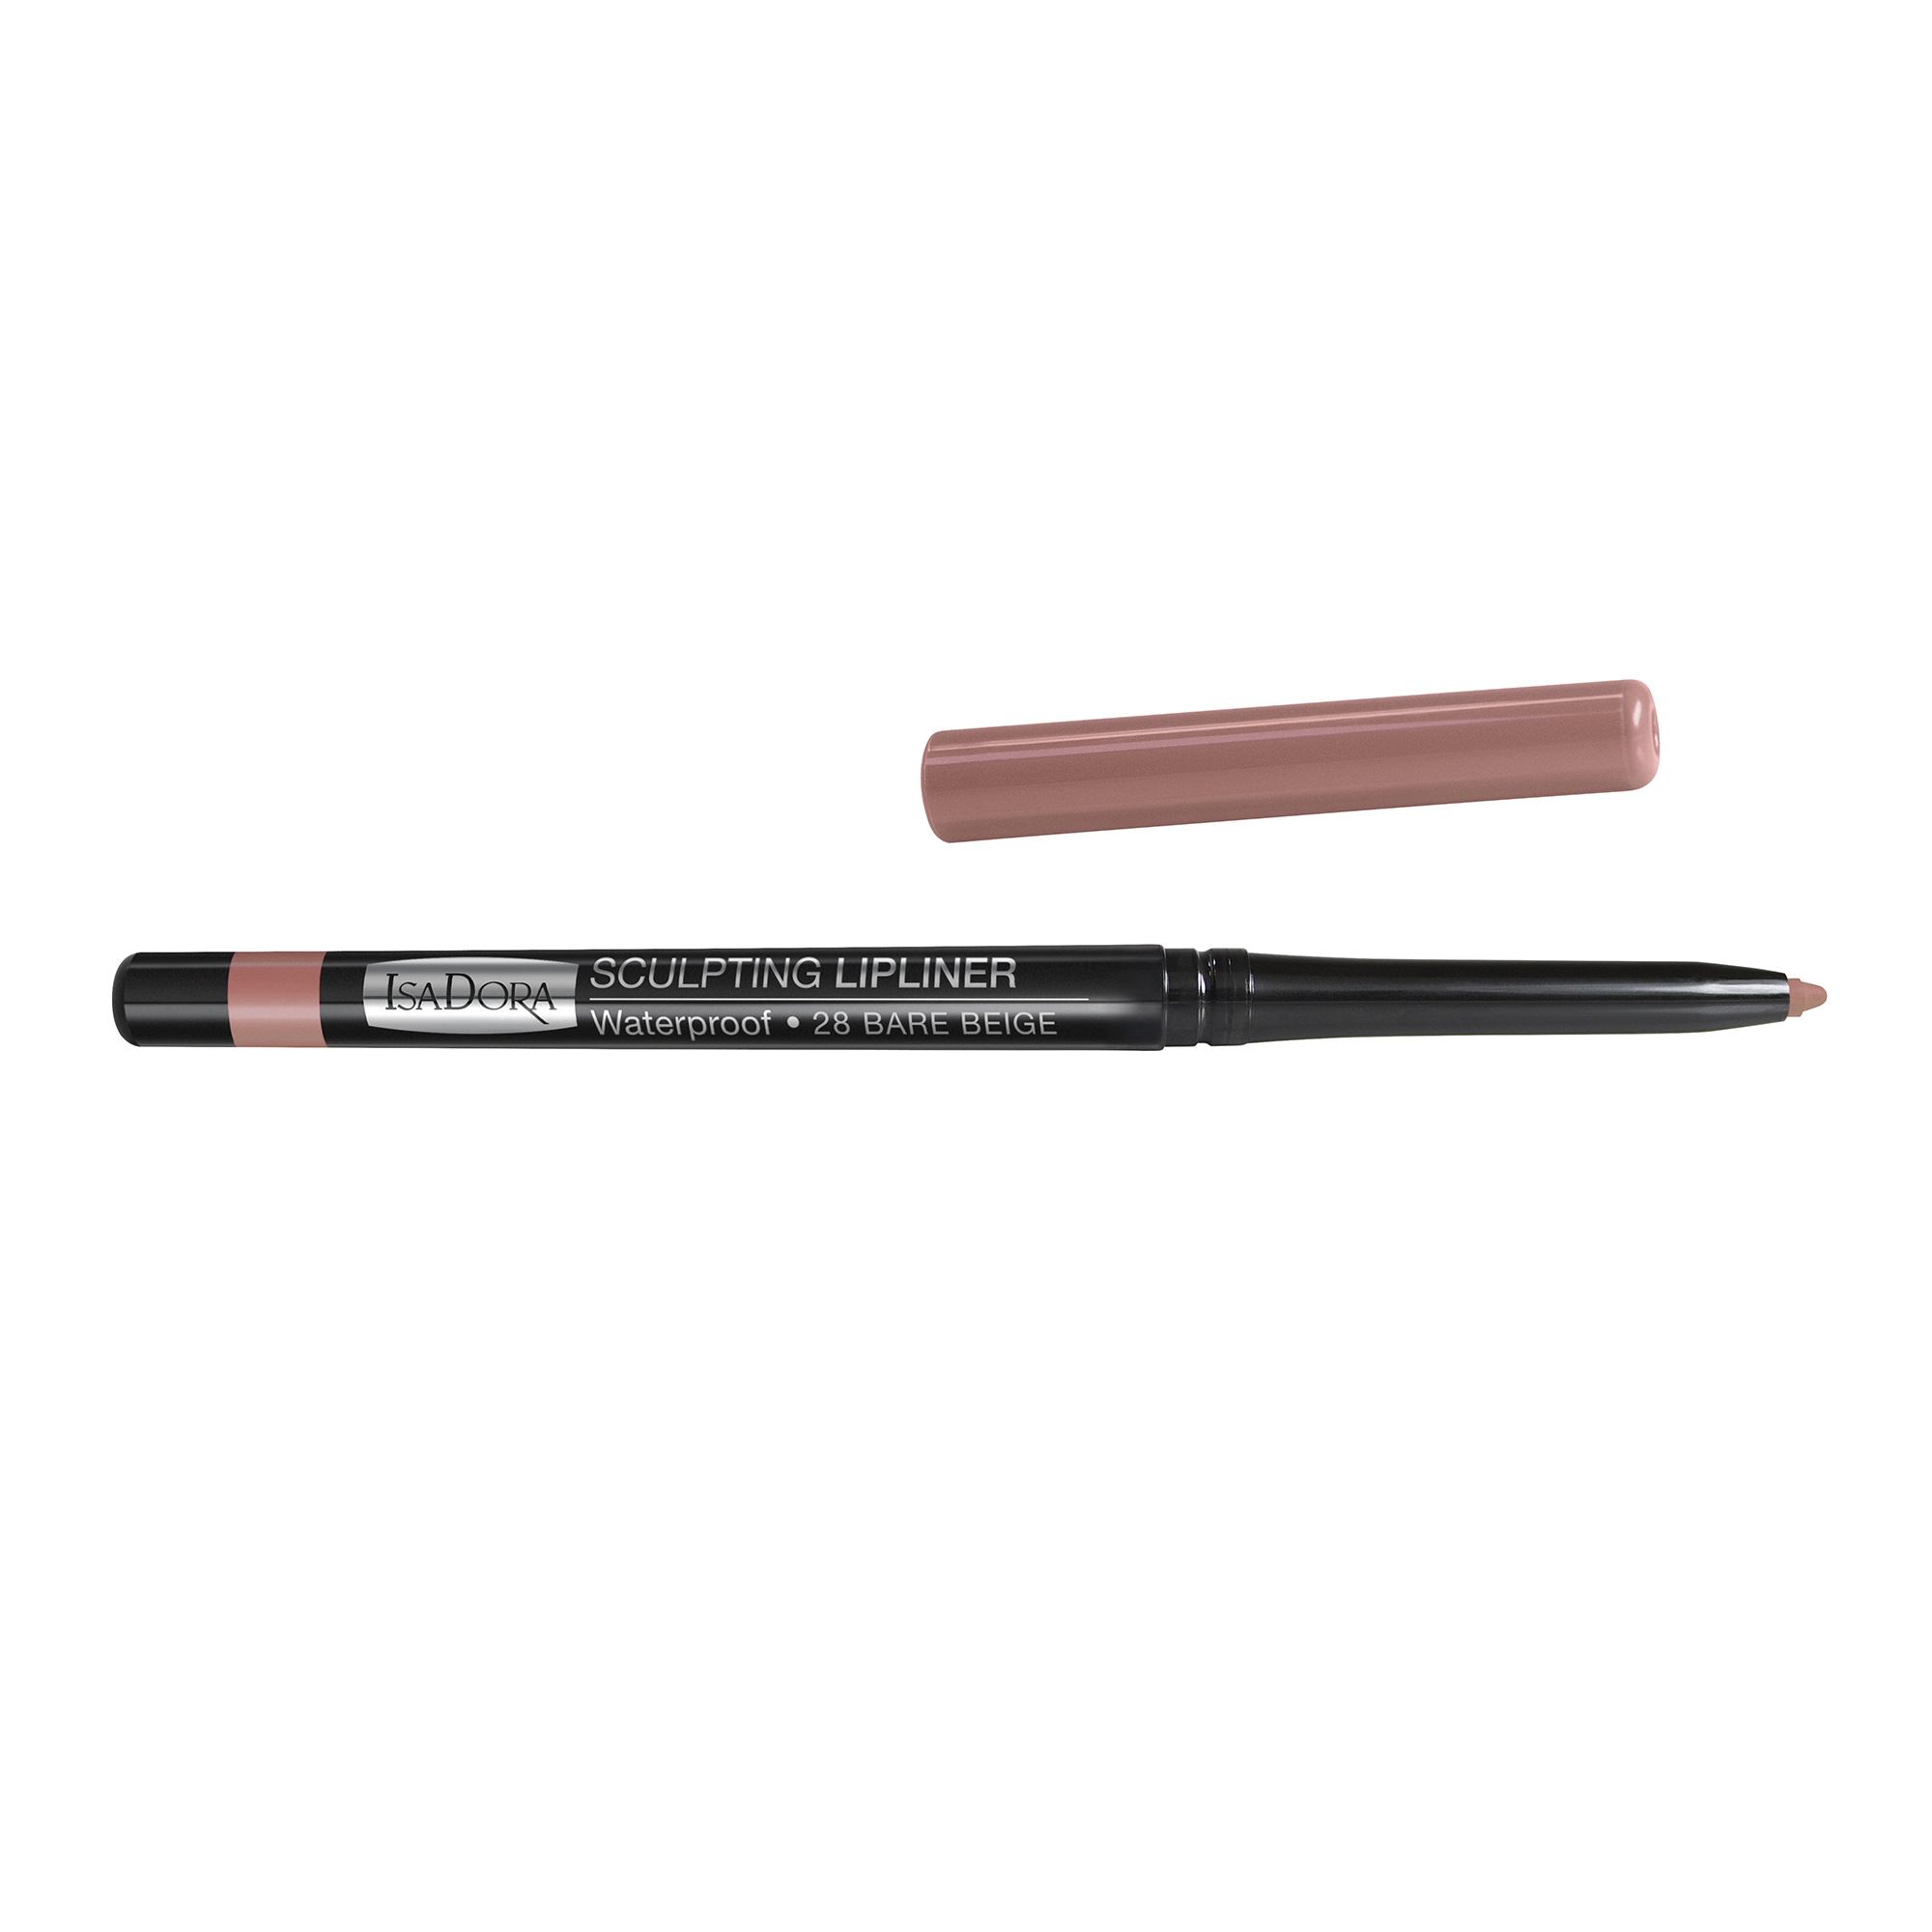 Sculpting Lip Liner Waterproof 28